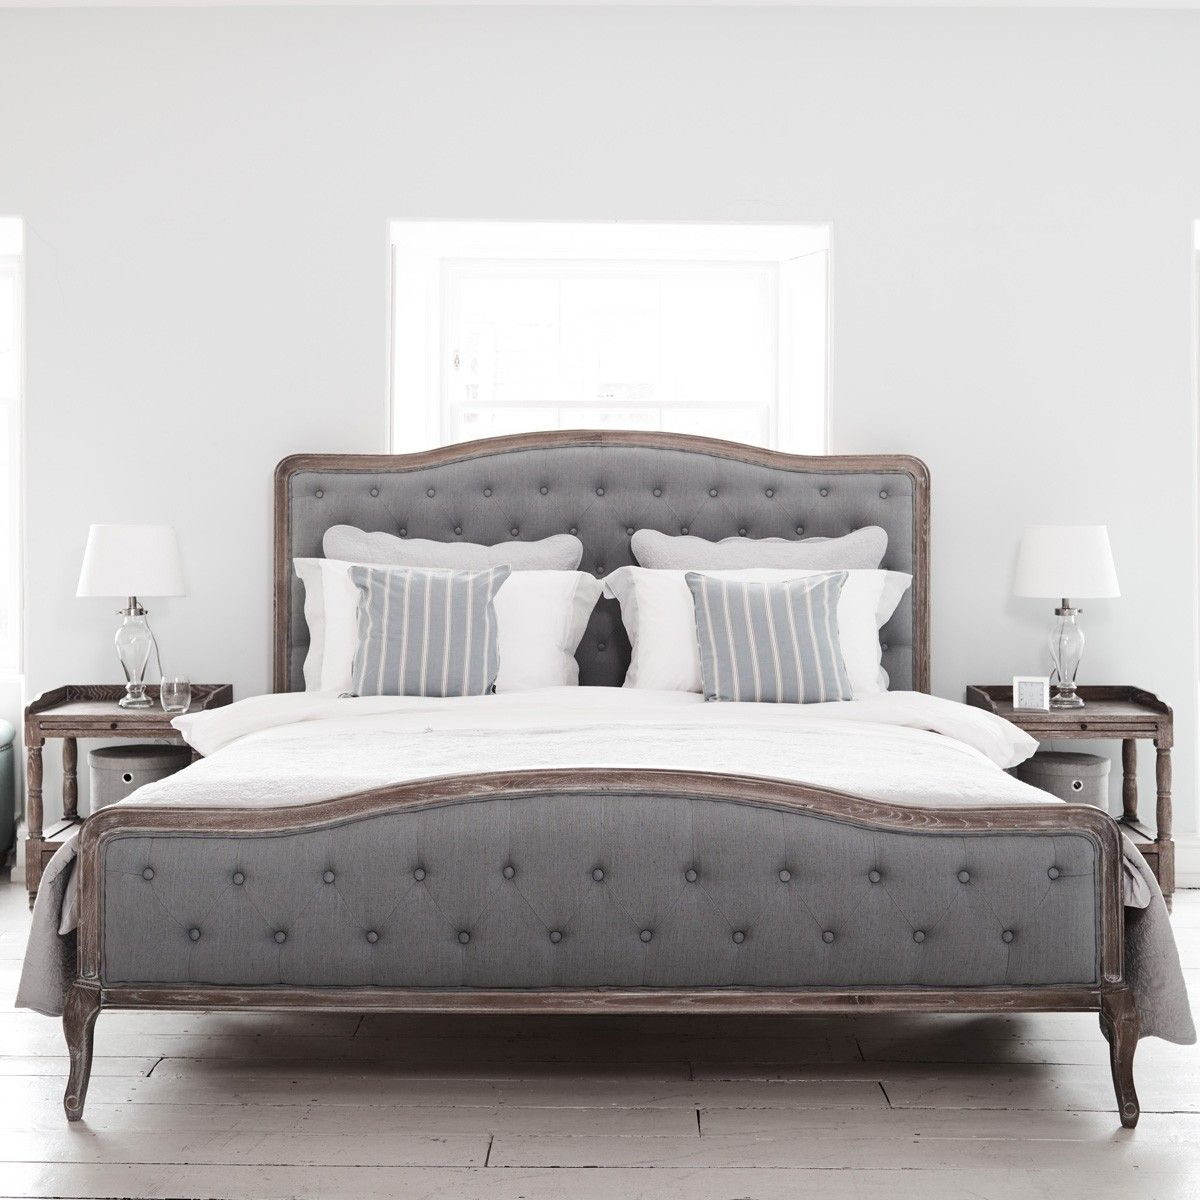 How Big Is A Super King Bed Our Super King Size Chantal Bed Is A Timeless Piece Of Elegance